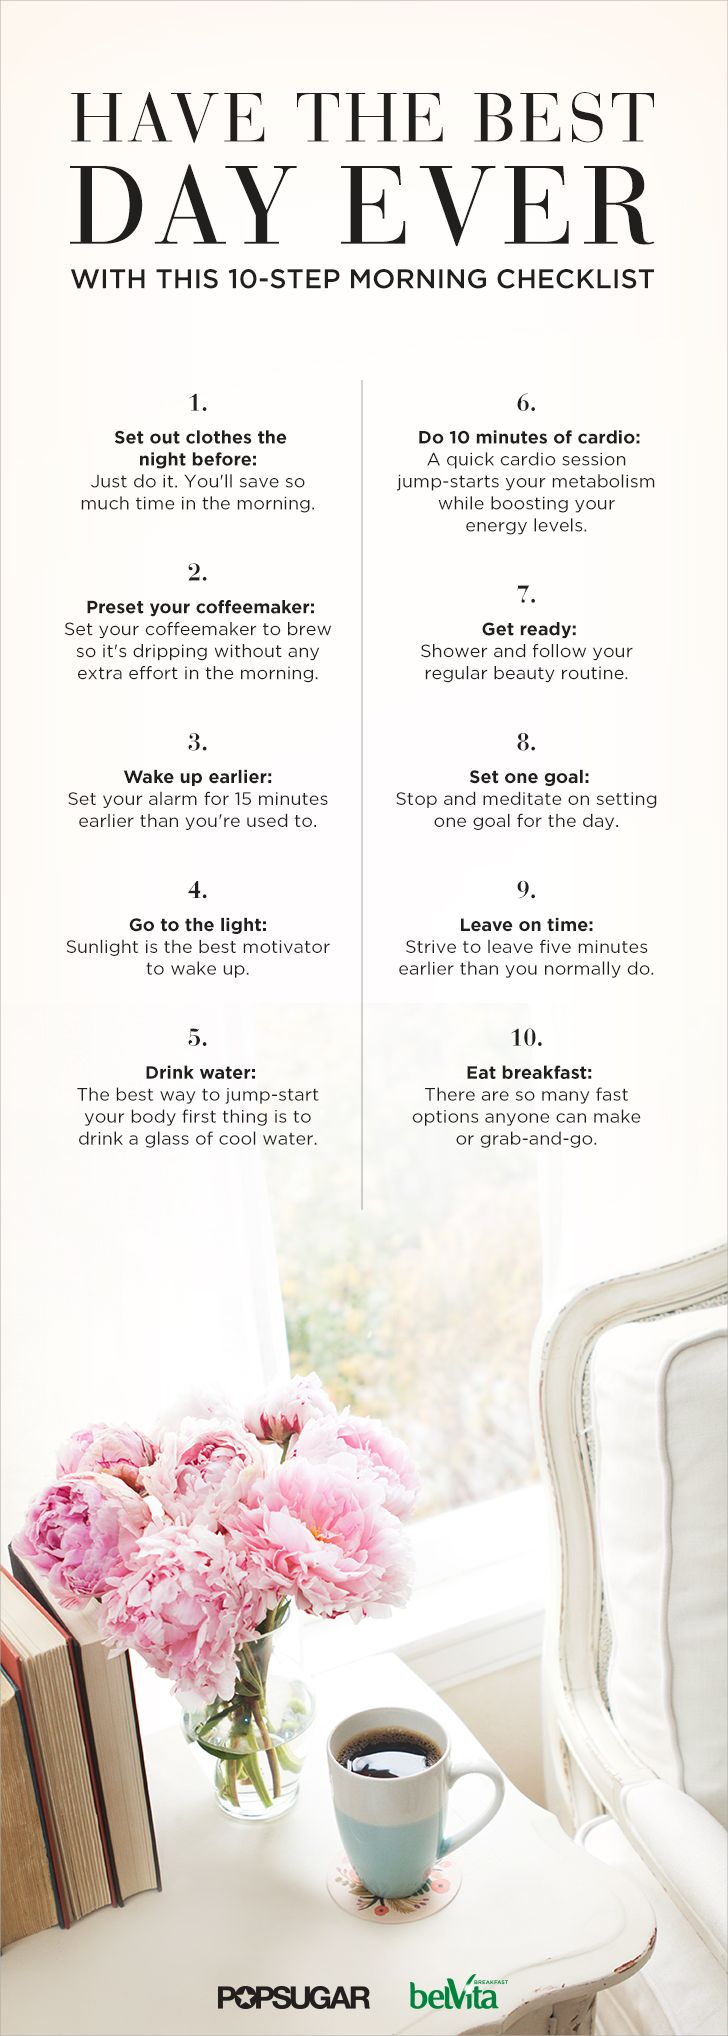 Things to better myself — Have the Best Day Ever With This 10-Step Morning Checklist